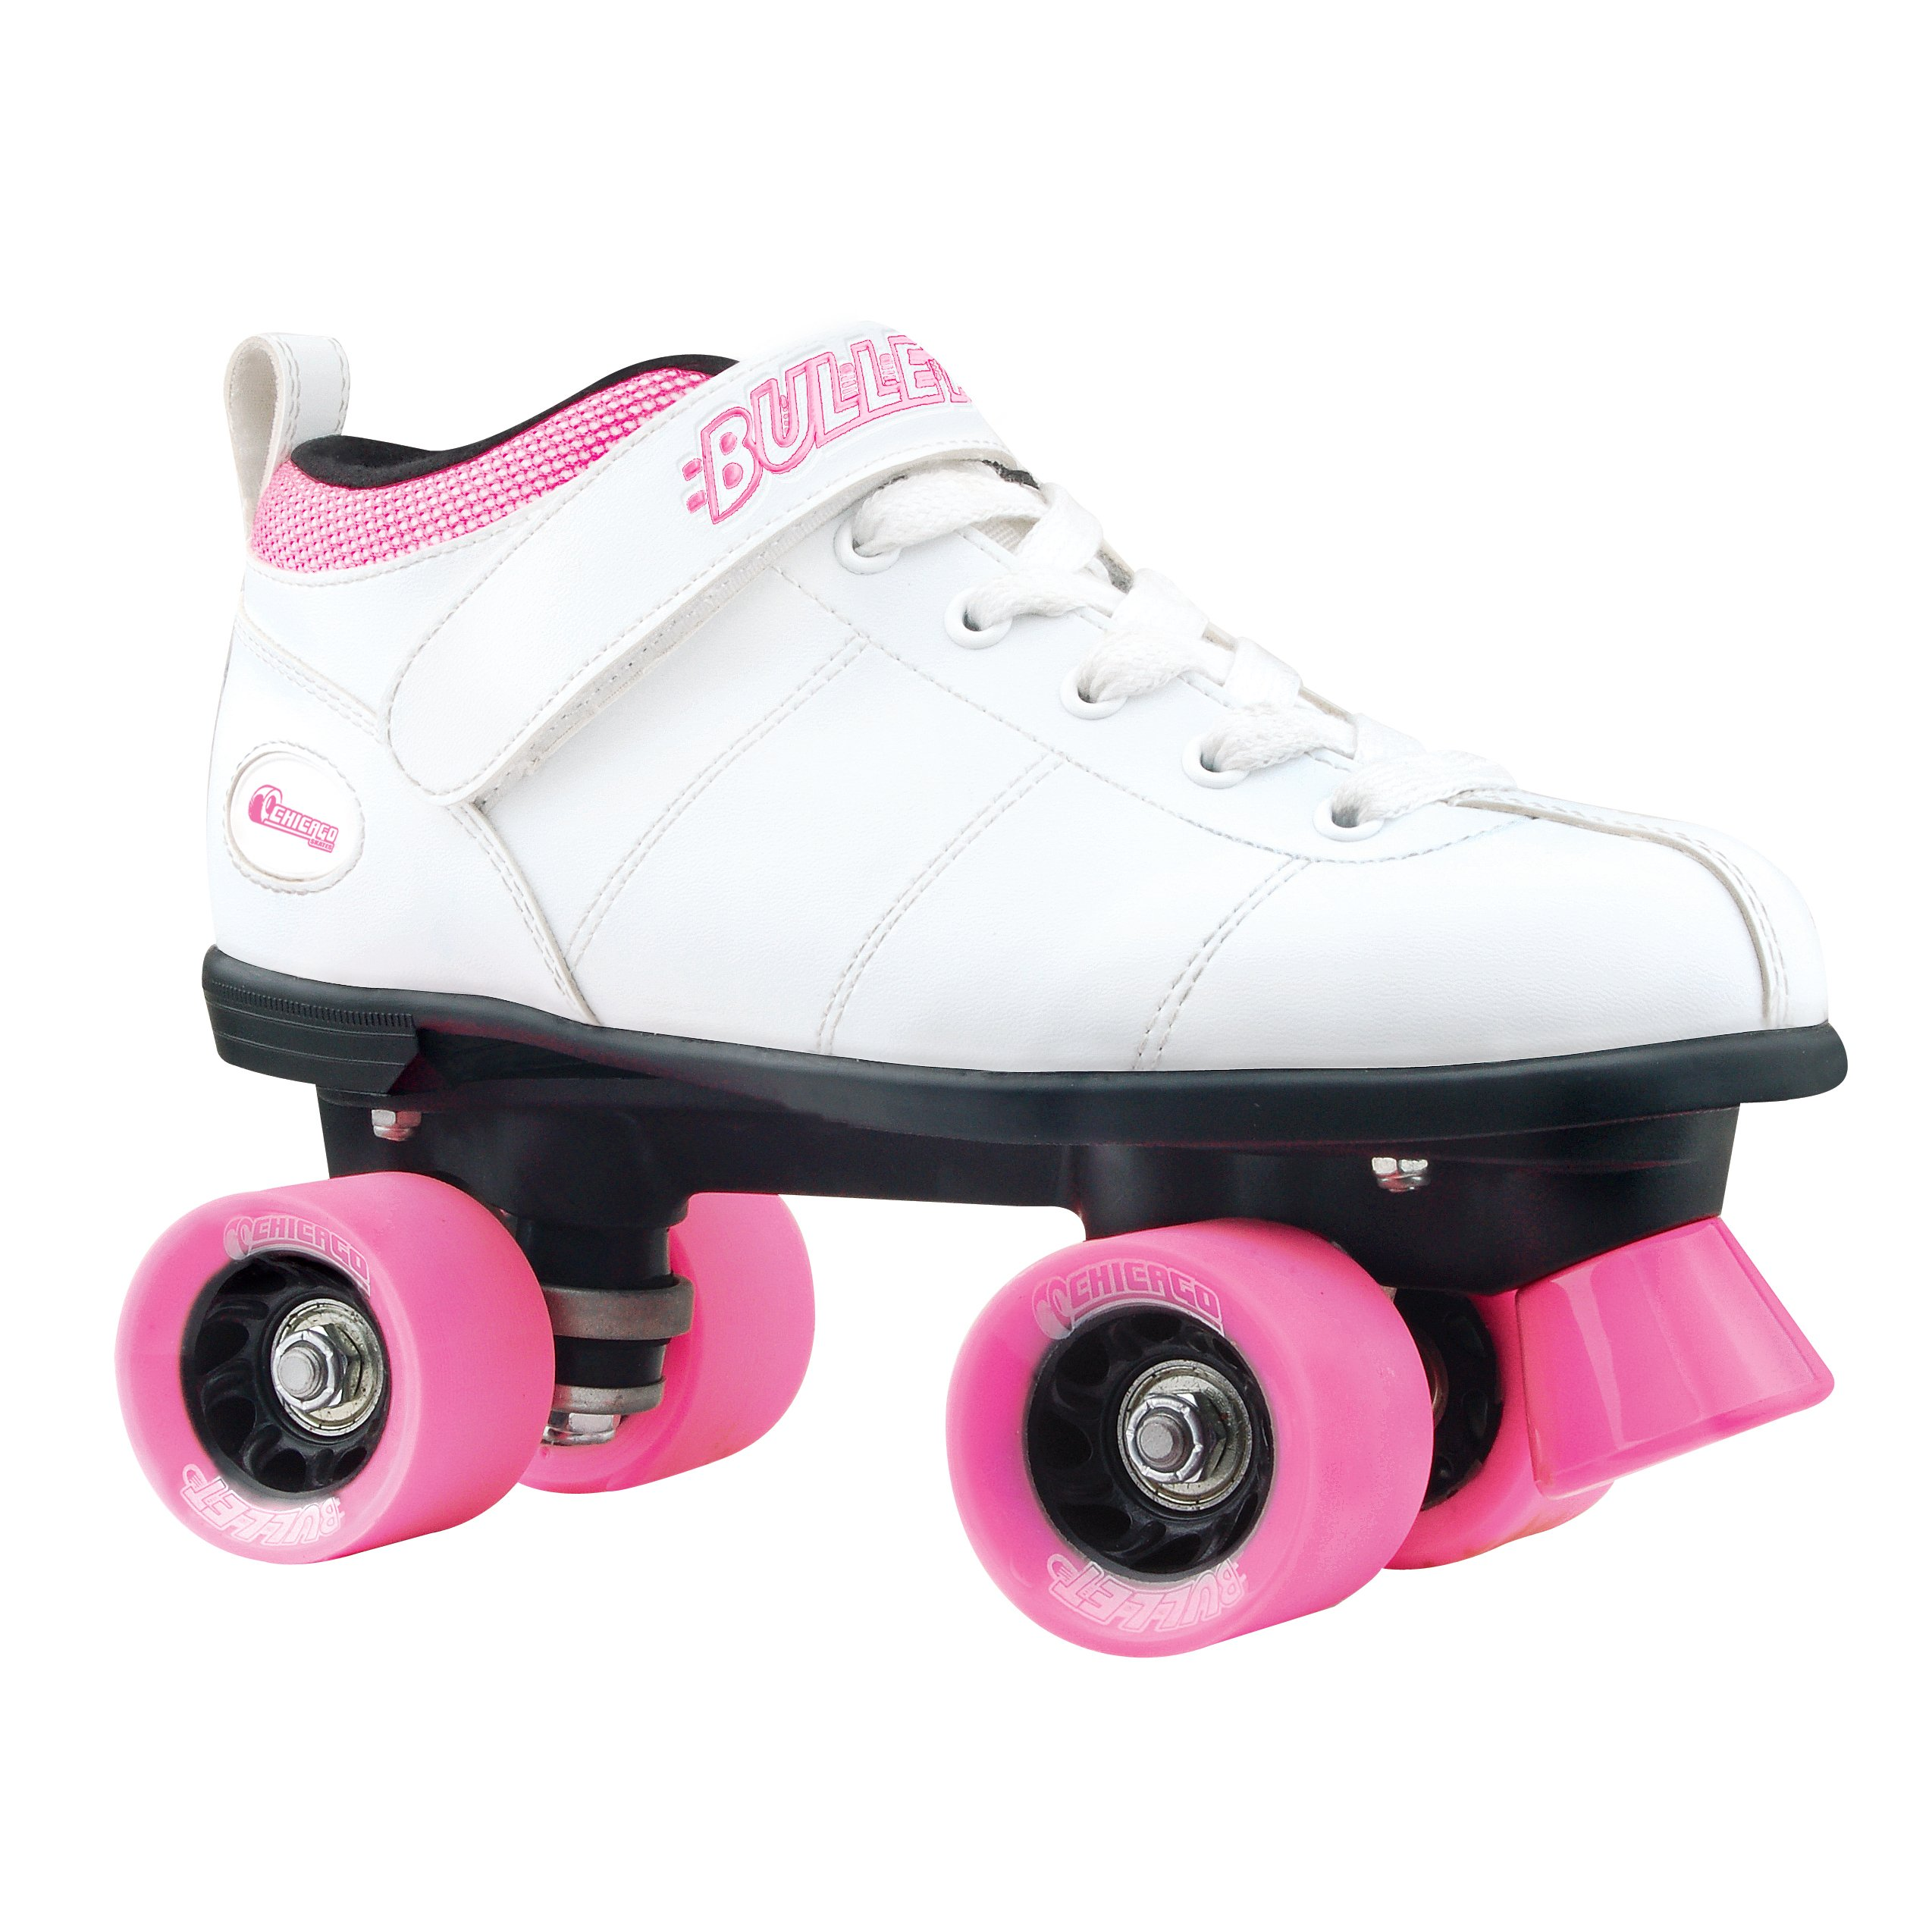 Chicago Bullet Ladies Speed Roller Skate -White Size 5